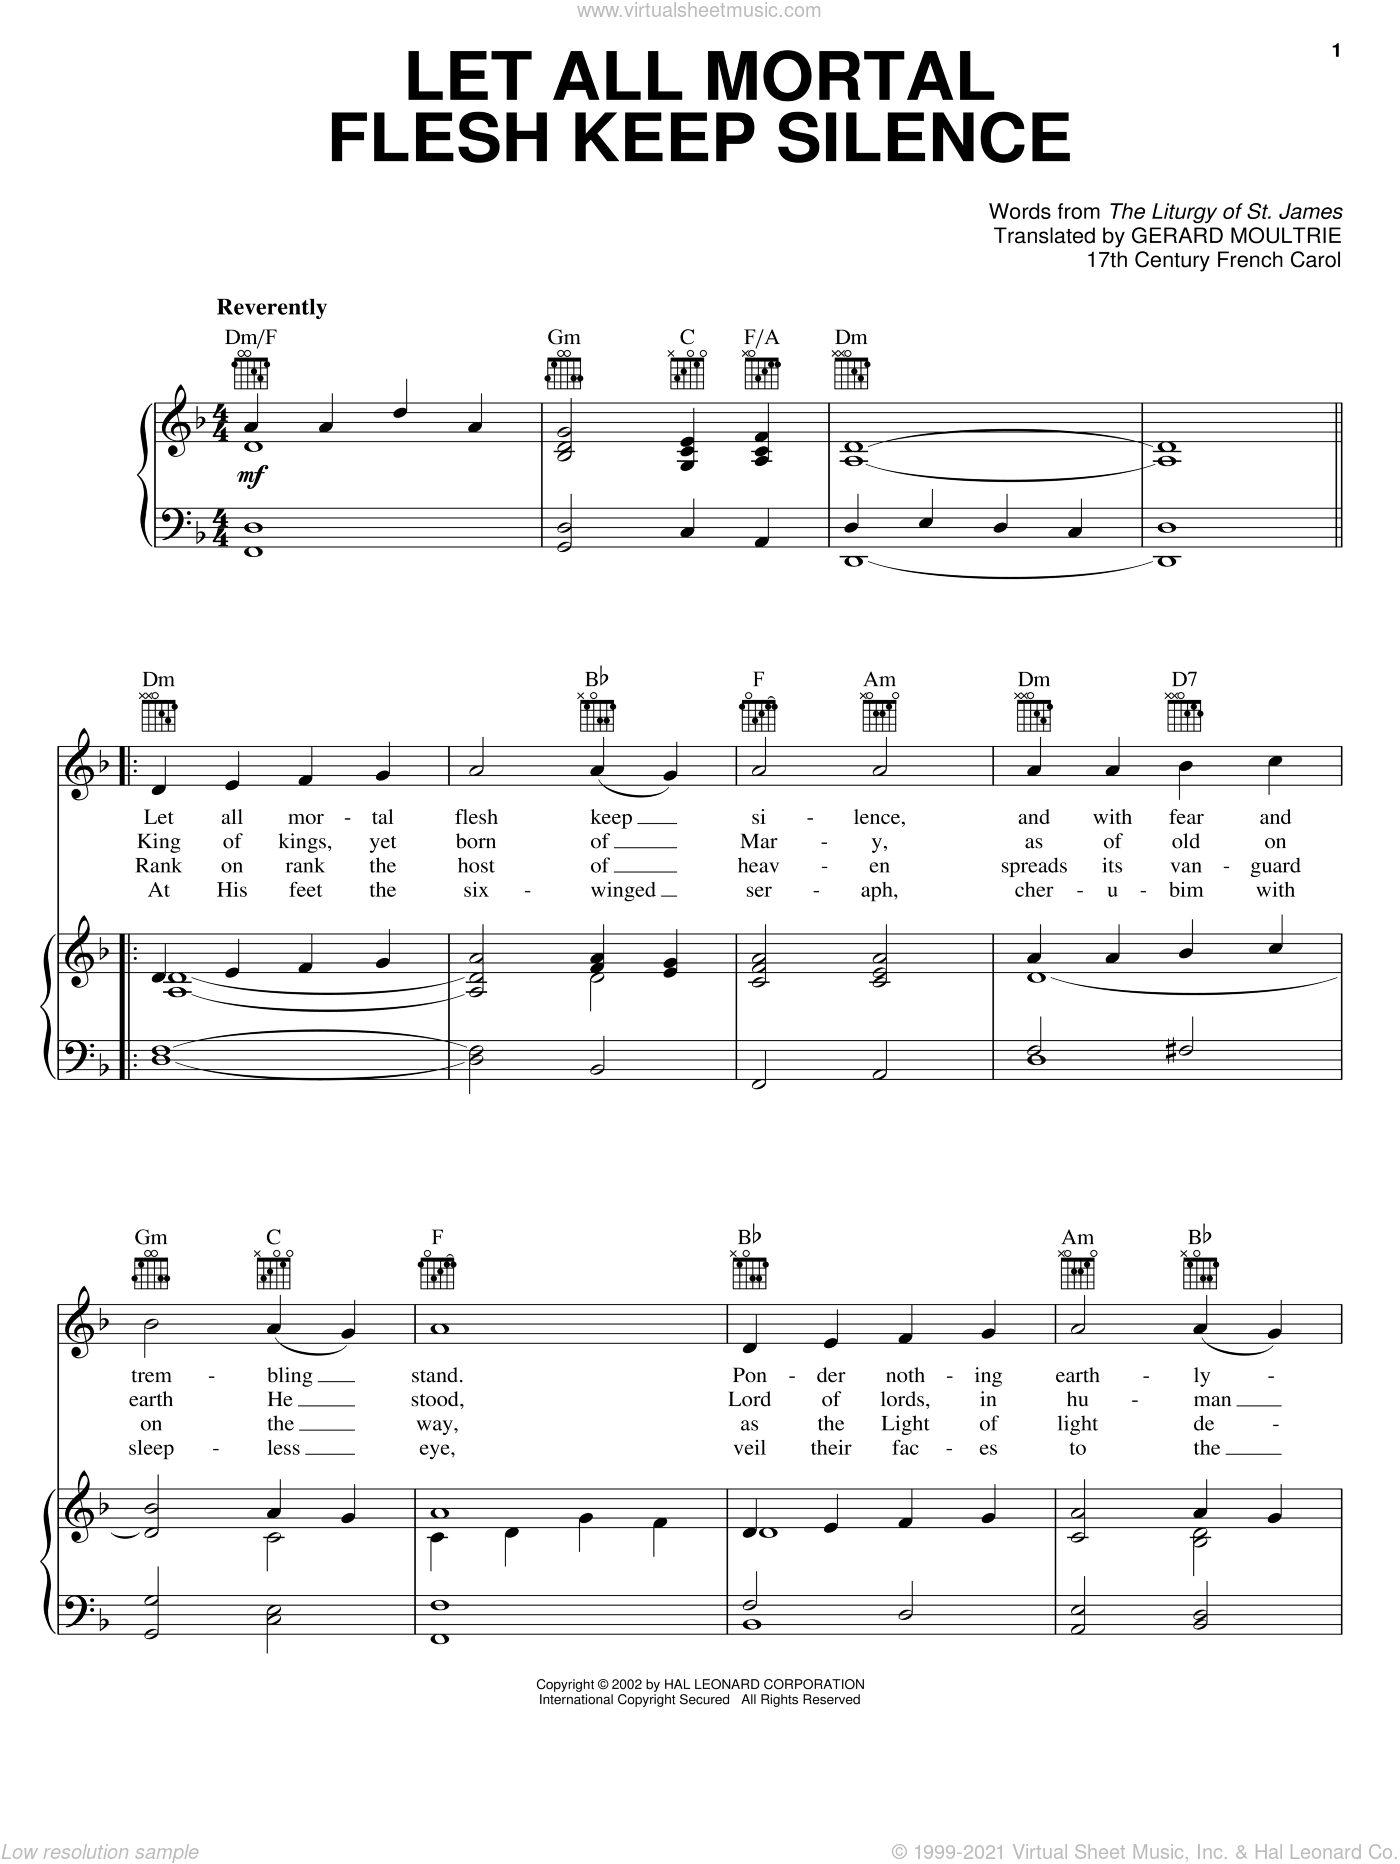 Let All Mortal Flesh Keep Silence sheet music for voice, piano or guitar by Anonymous, Gerard Moultrie, Liturgy Of St. James and Miscellaneous, classical score, intermediate skill level